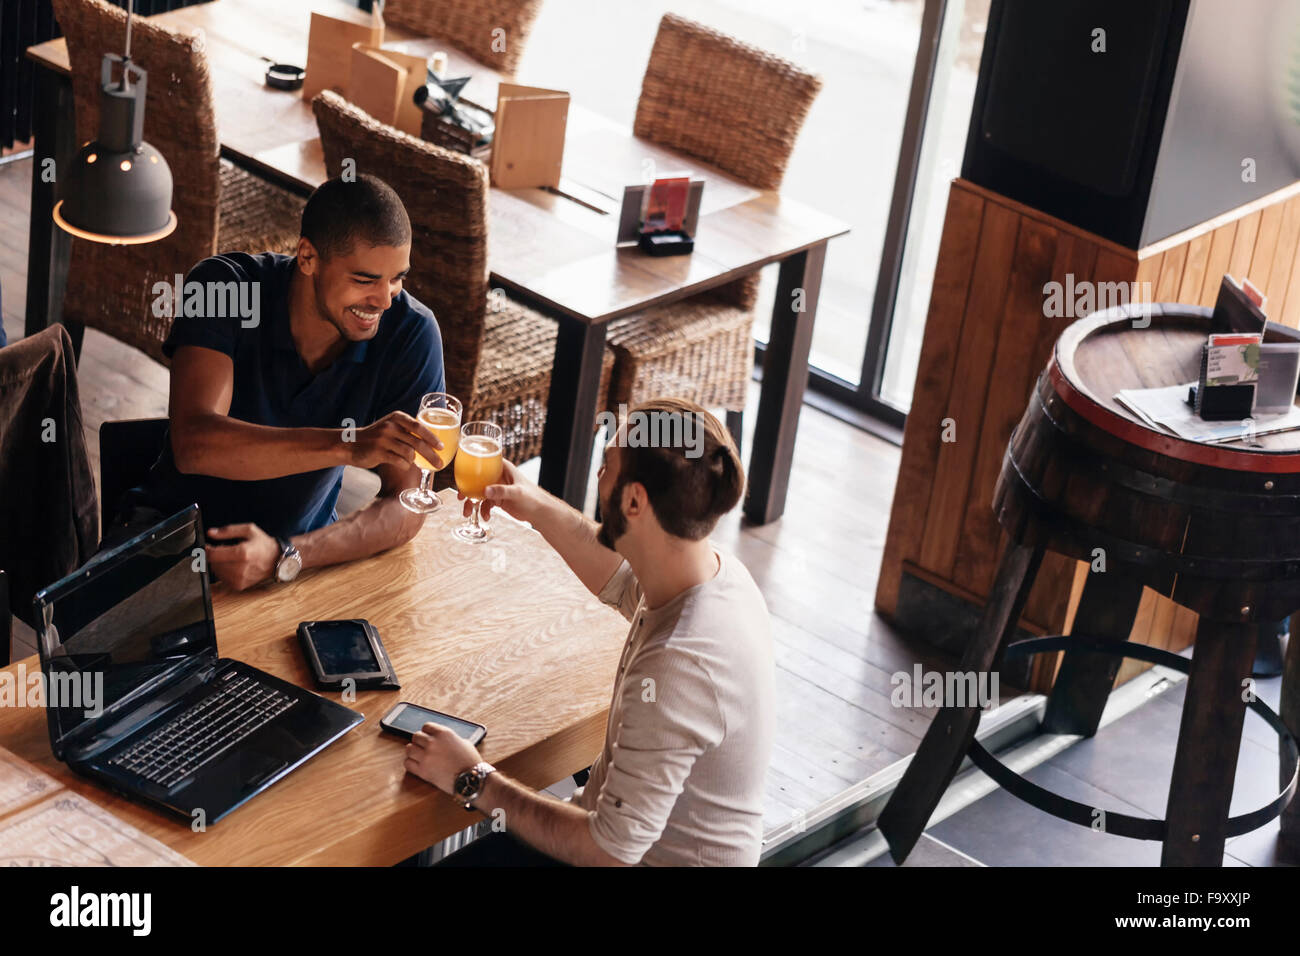 Two men with laptop and portable devices in a bar clinking beer glasses - Stock Image